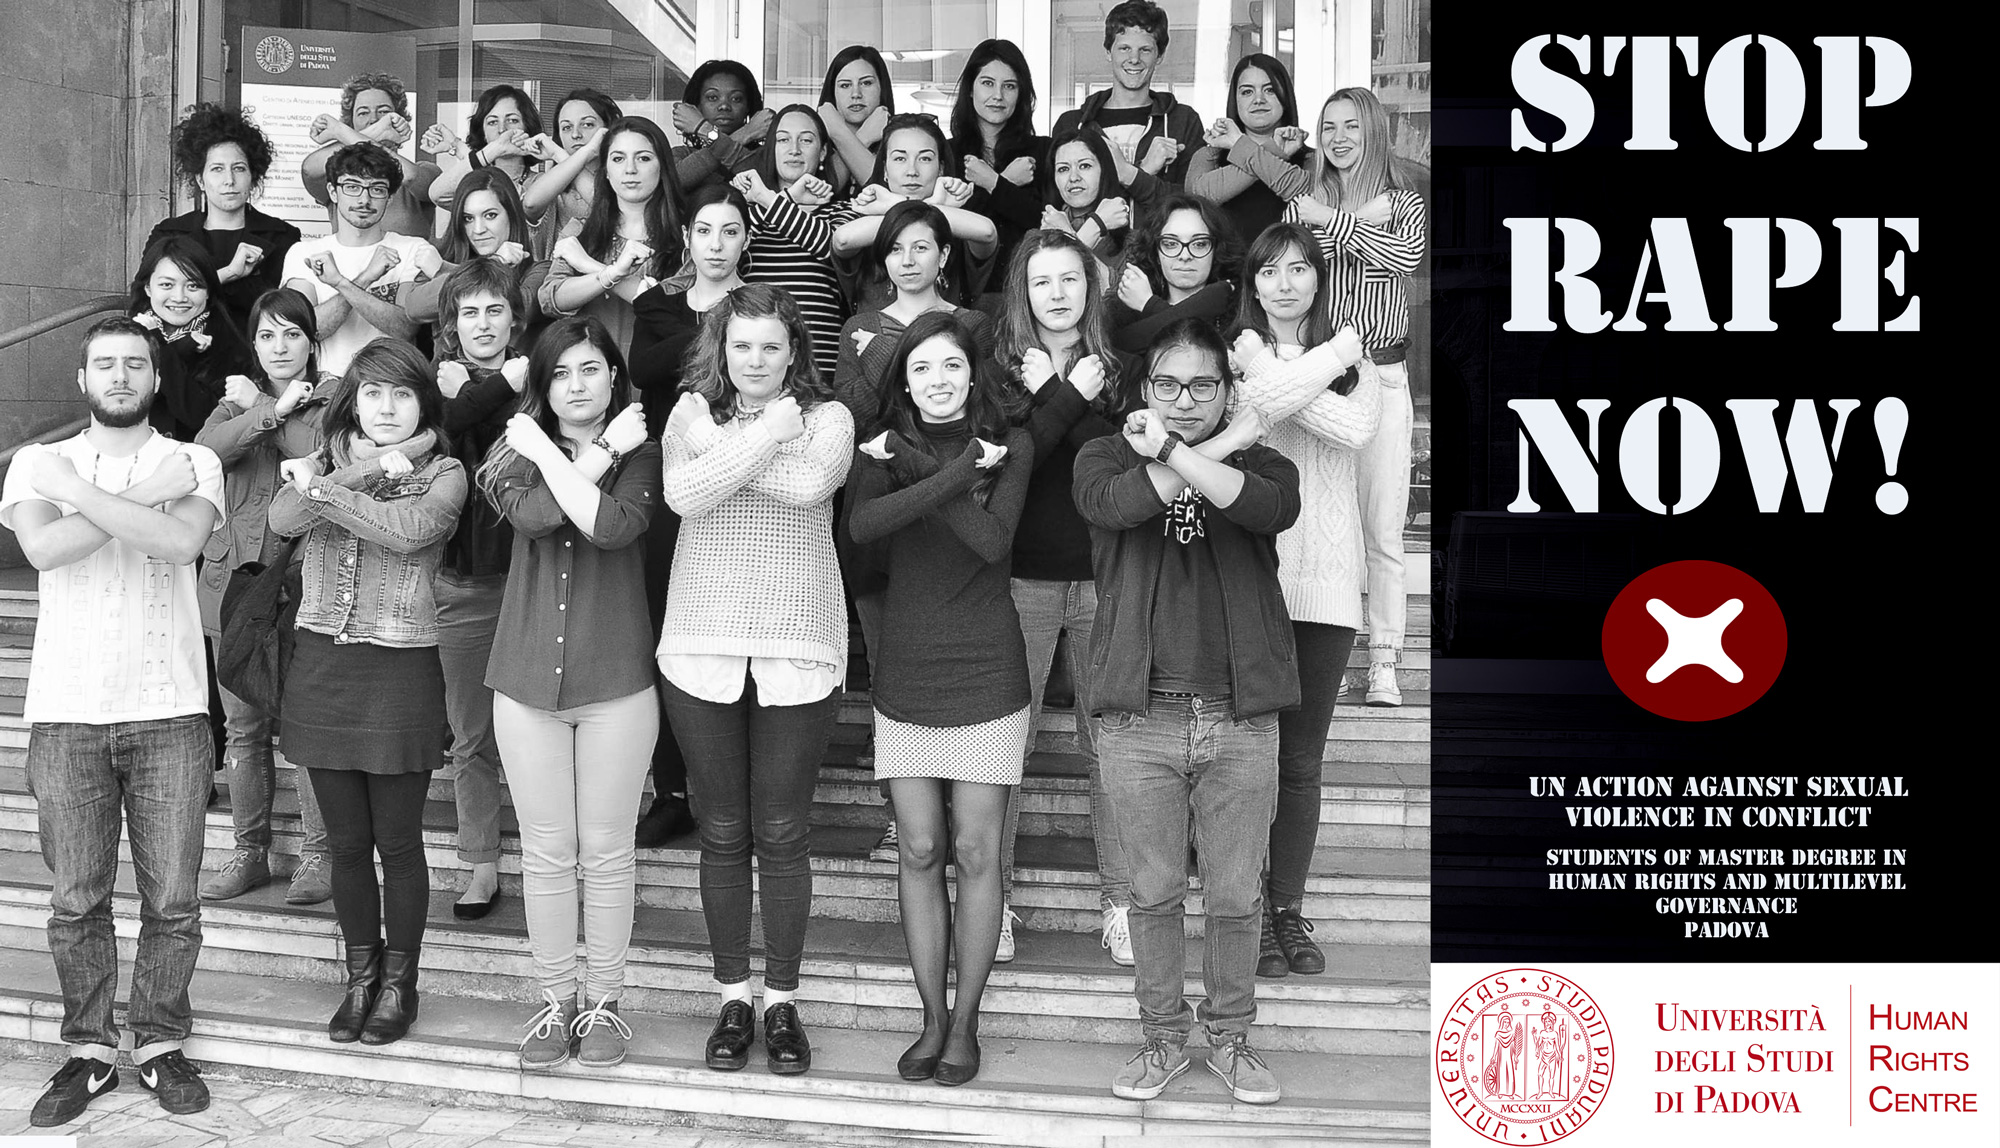 Students of the Master's Degree in Human Rights and Multi-level Governance, A.A. 2014/2015 take a picture with their arms crossed to join the UN global campaign Stop rape now